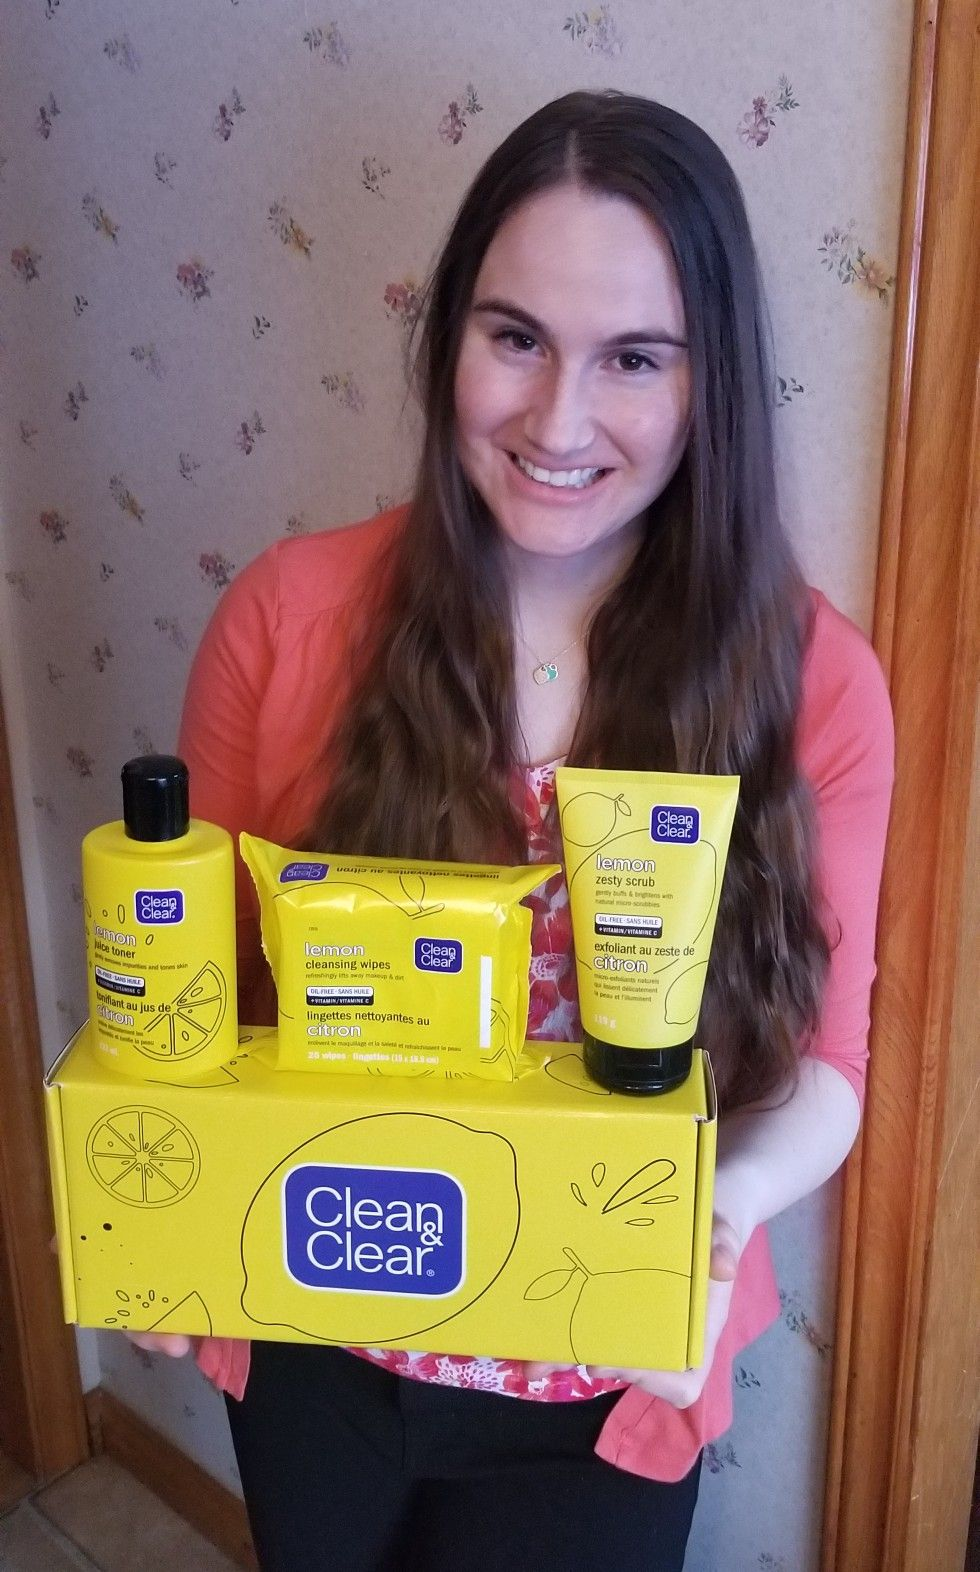 Clean & clear voxbox Cleansing wipes, Hoe tips, Cleaning